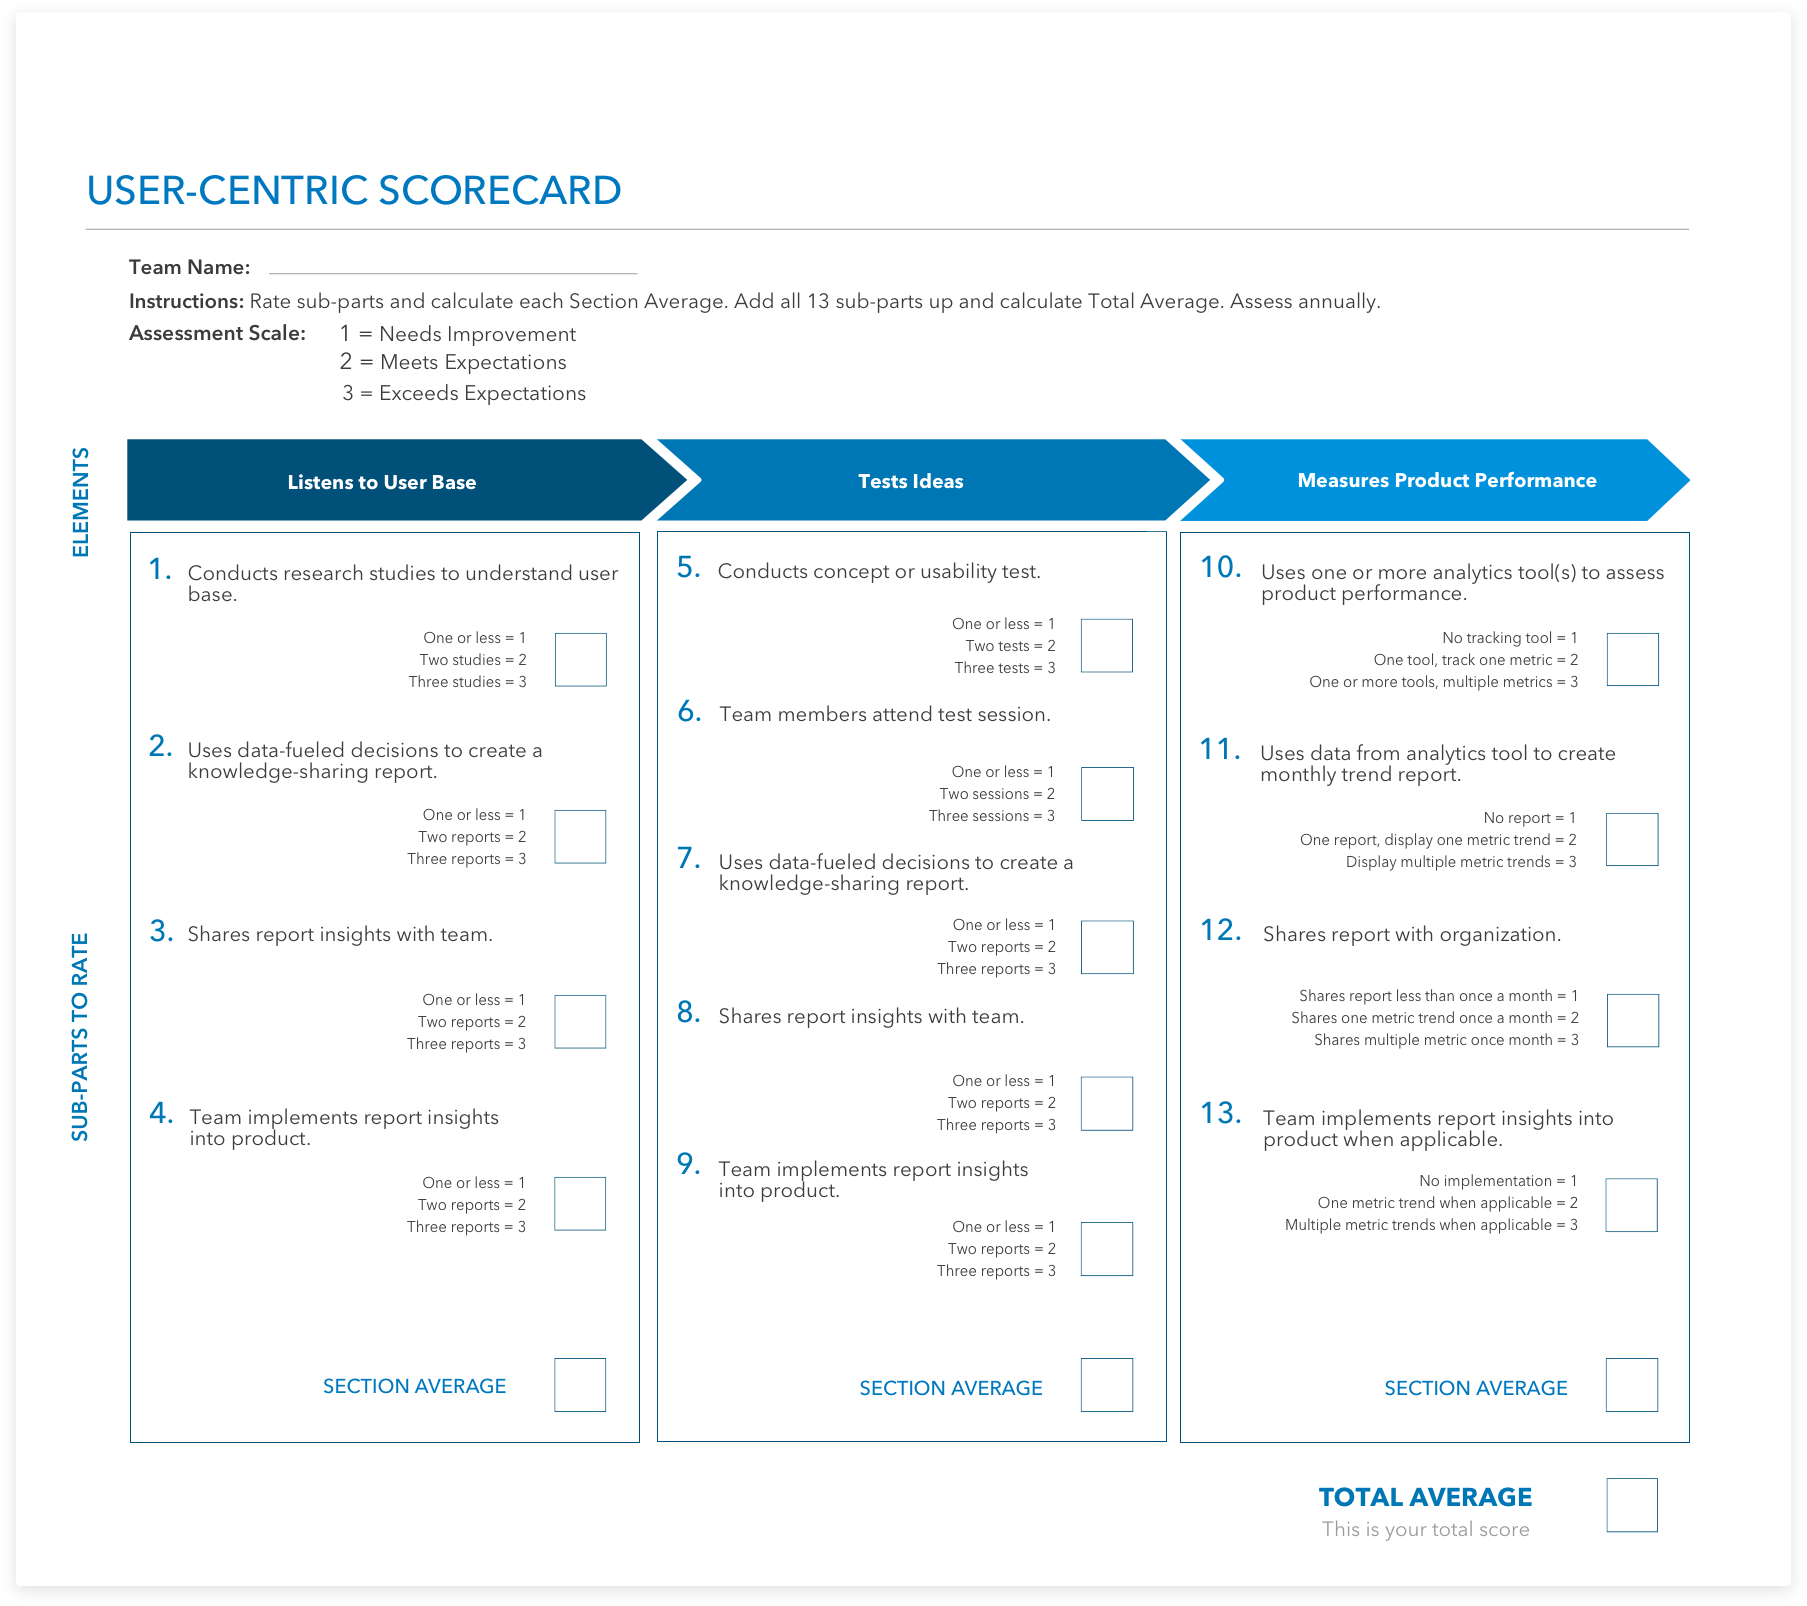 Image of a checklist with user-centric metrics.